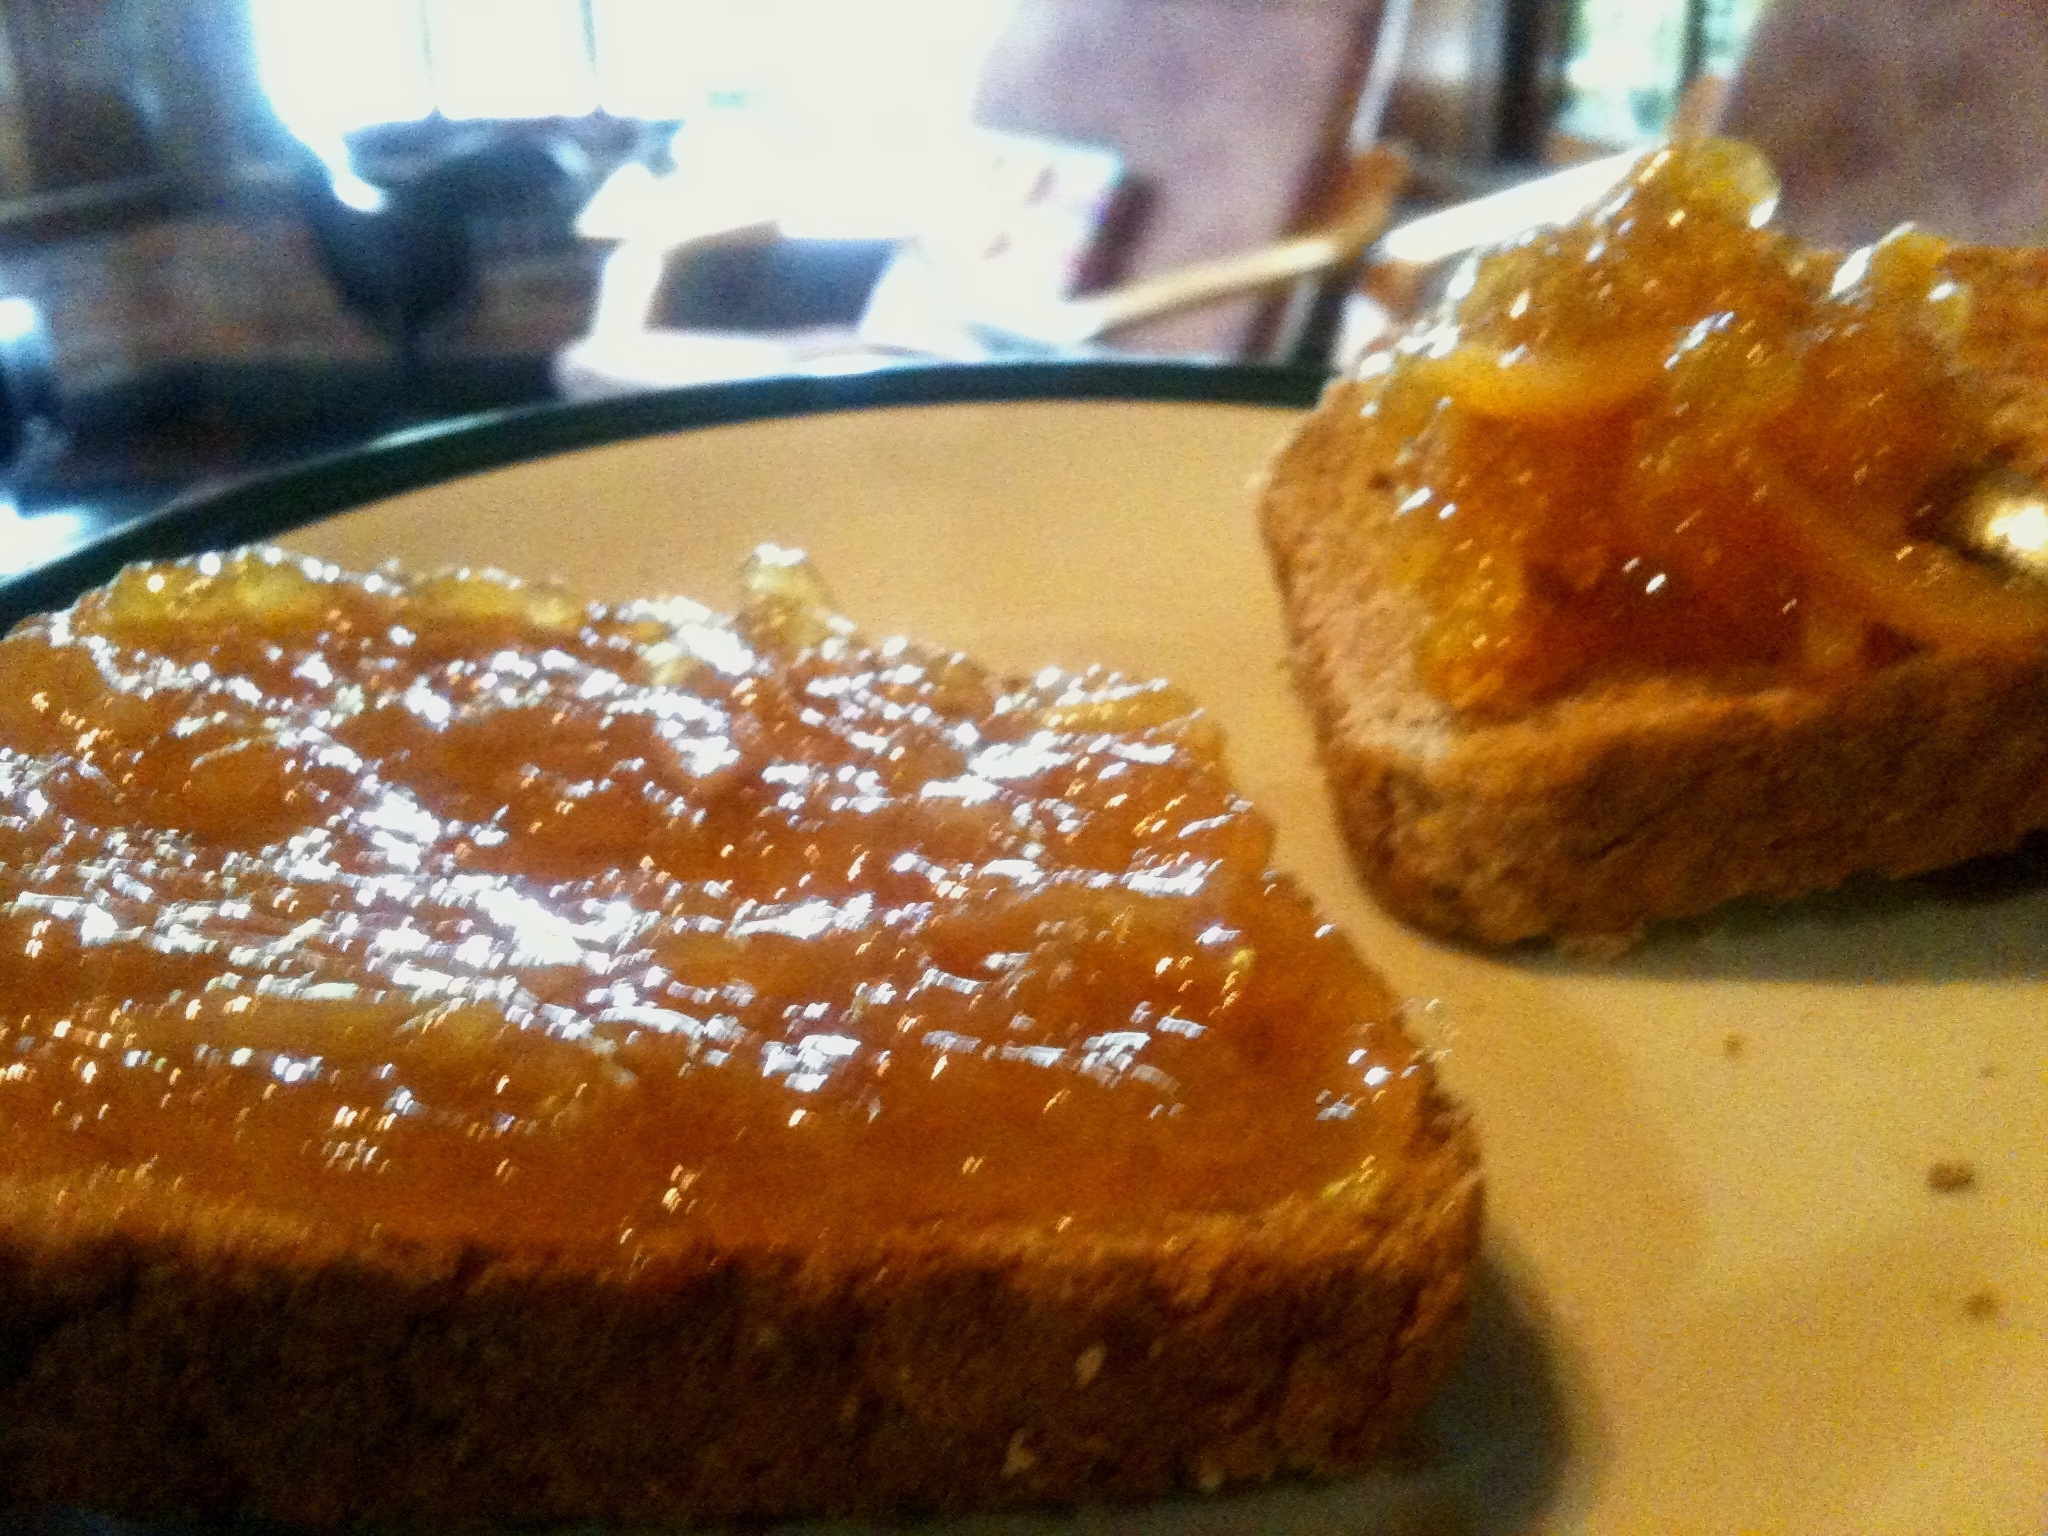 Mermelada casera de naranja (dulce o amarga) - Home-made orange jam (sweet or bitter)